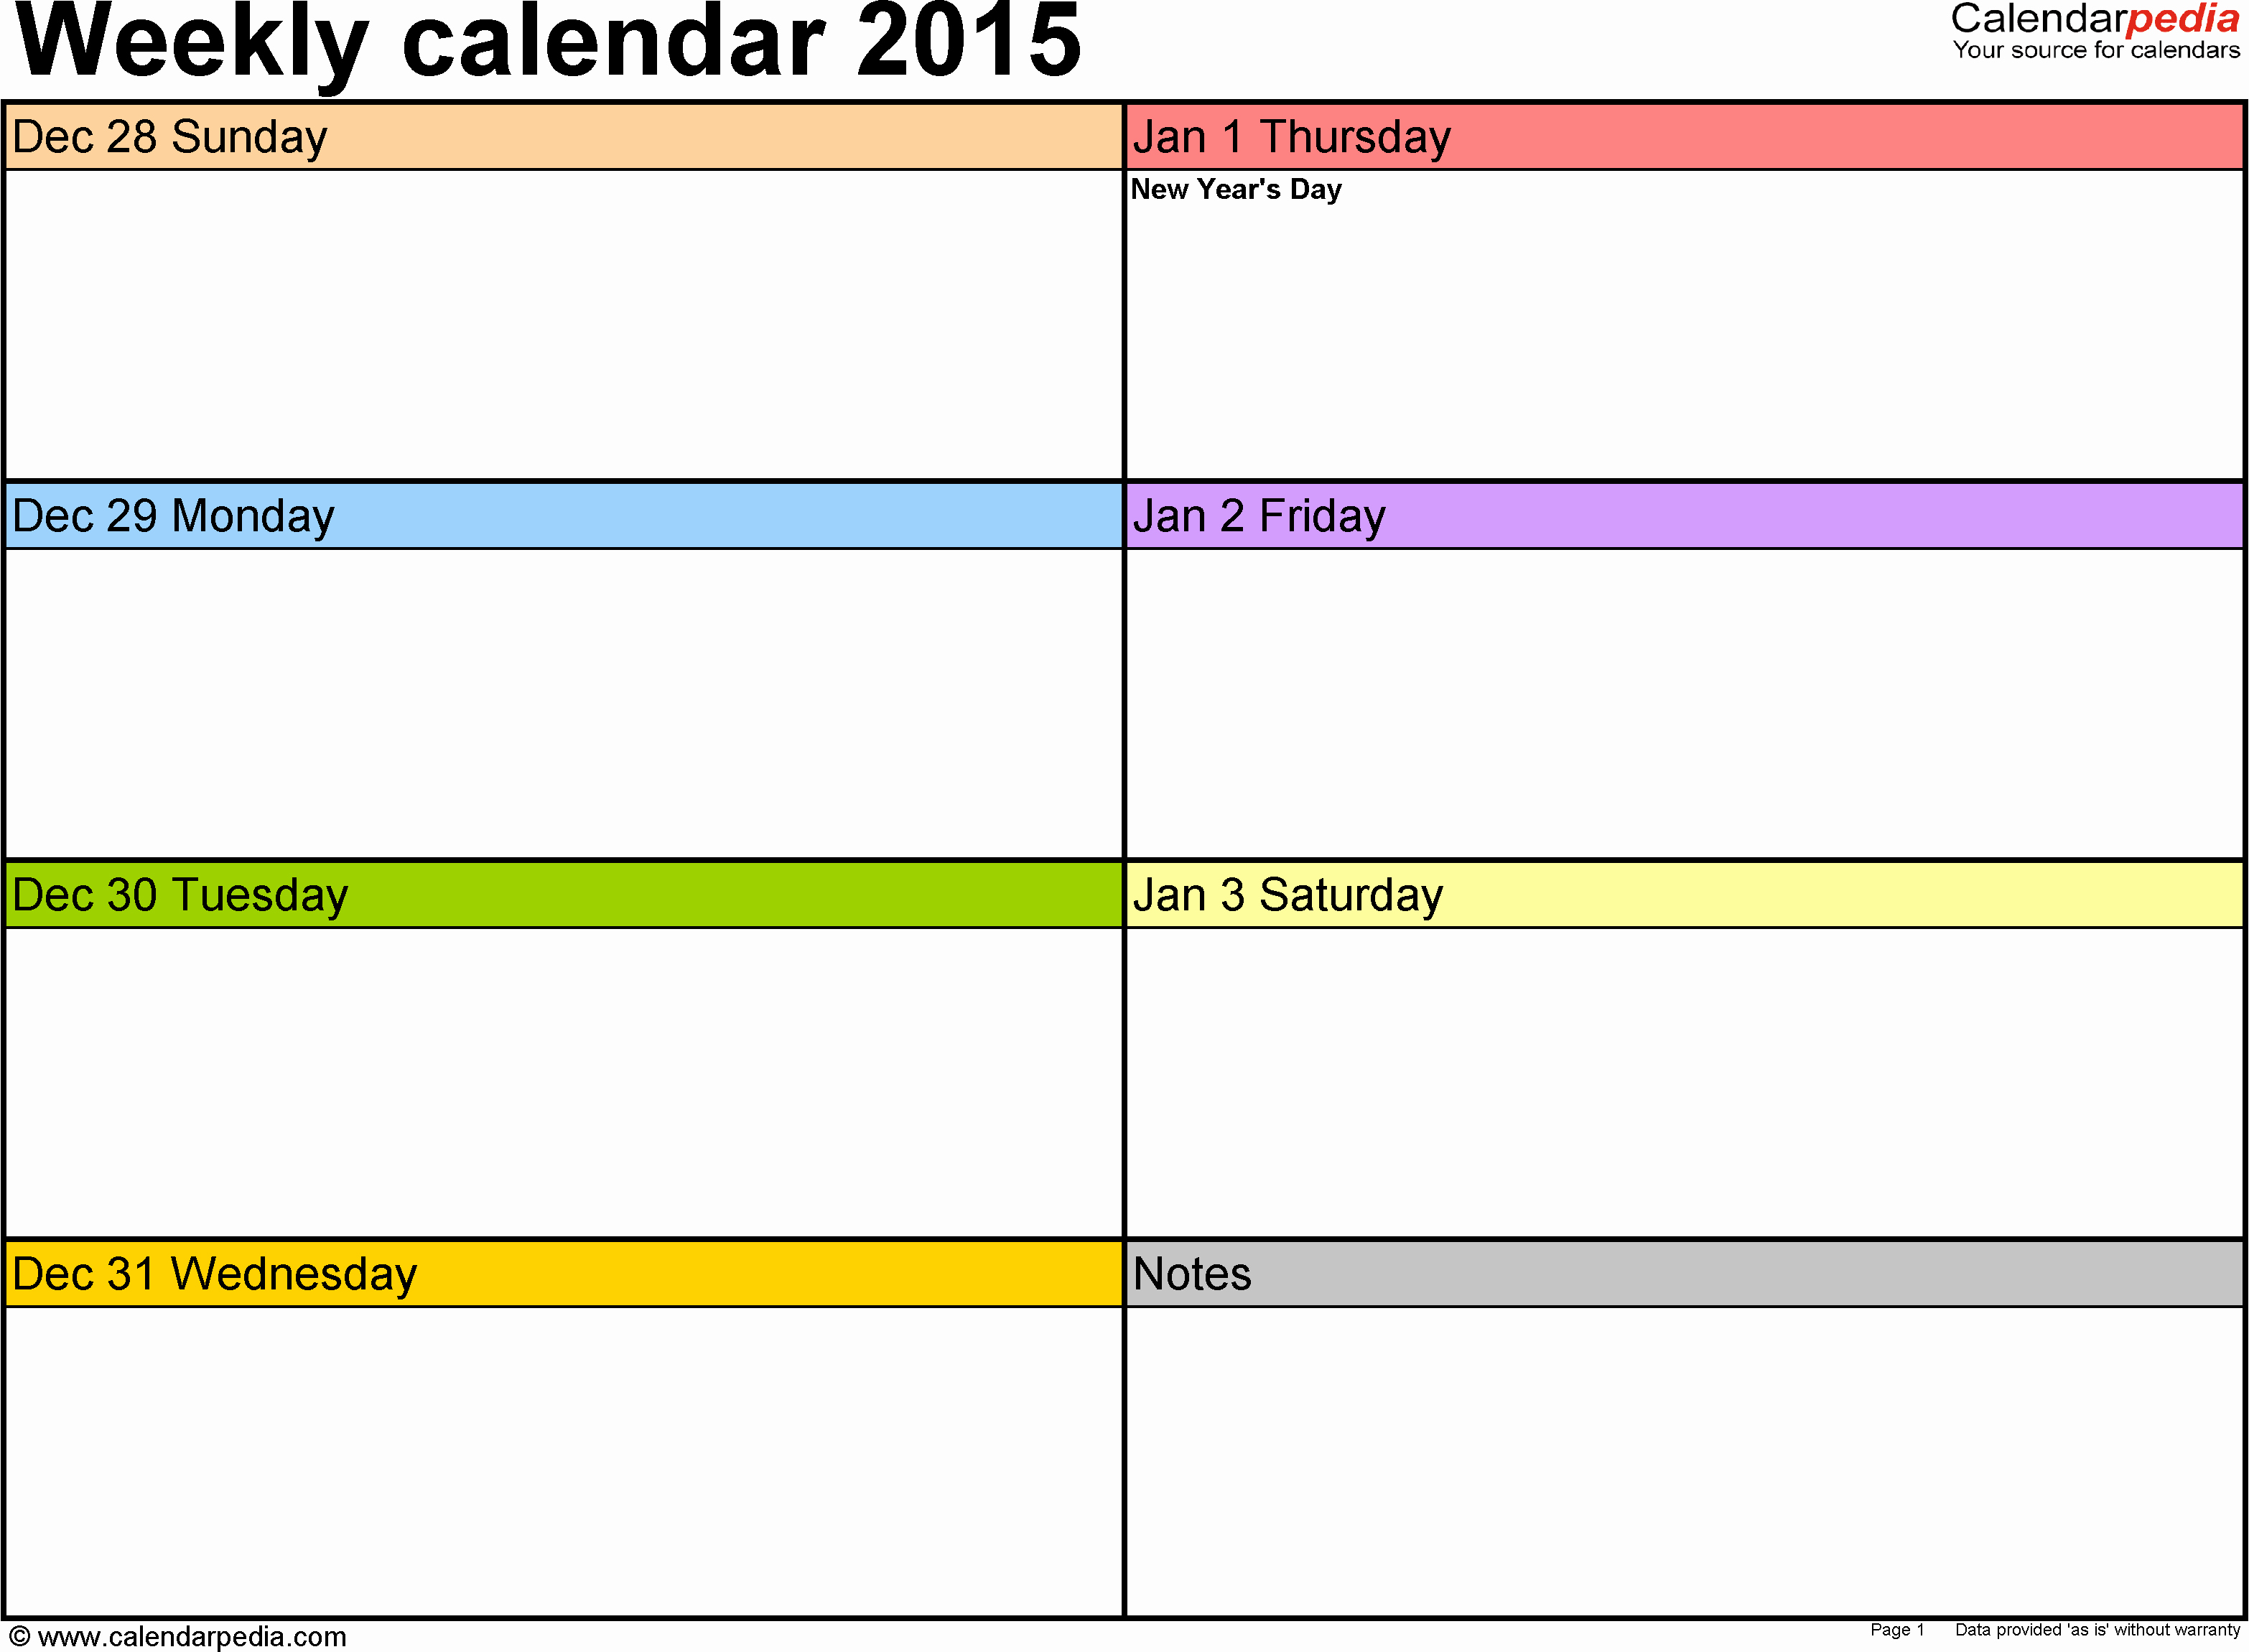 Weekly Calendar Template Excel Lovely Weekly Calendar 2015 for Excel 12 Free Printable Templates